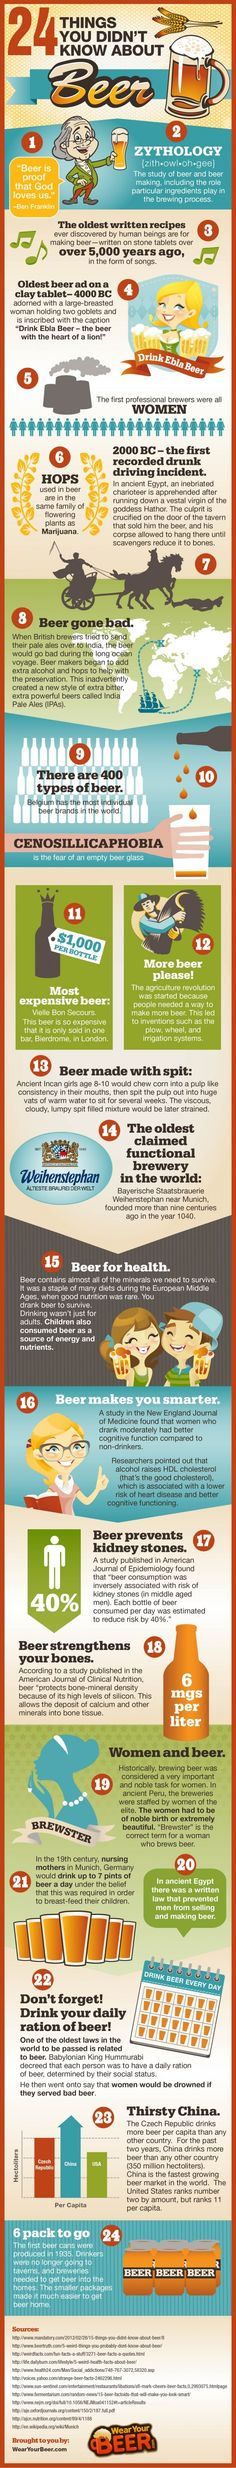 24 Things You Didn't Know About Beer Infographic